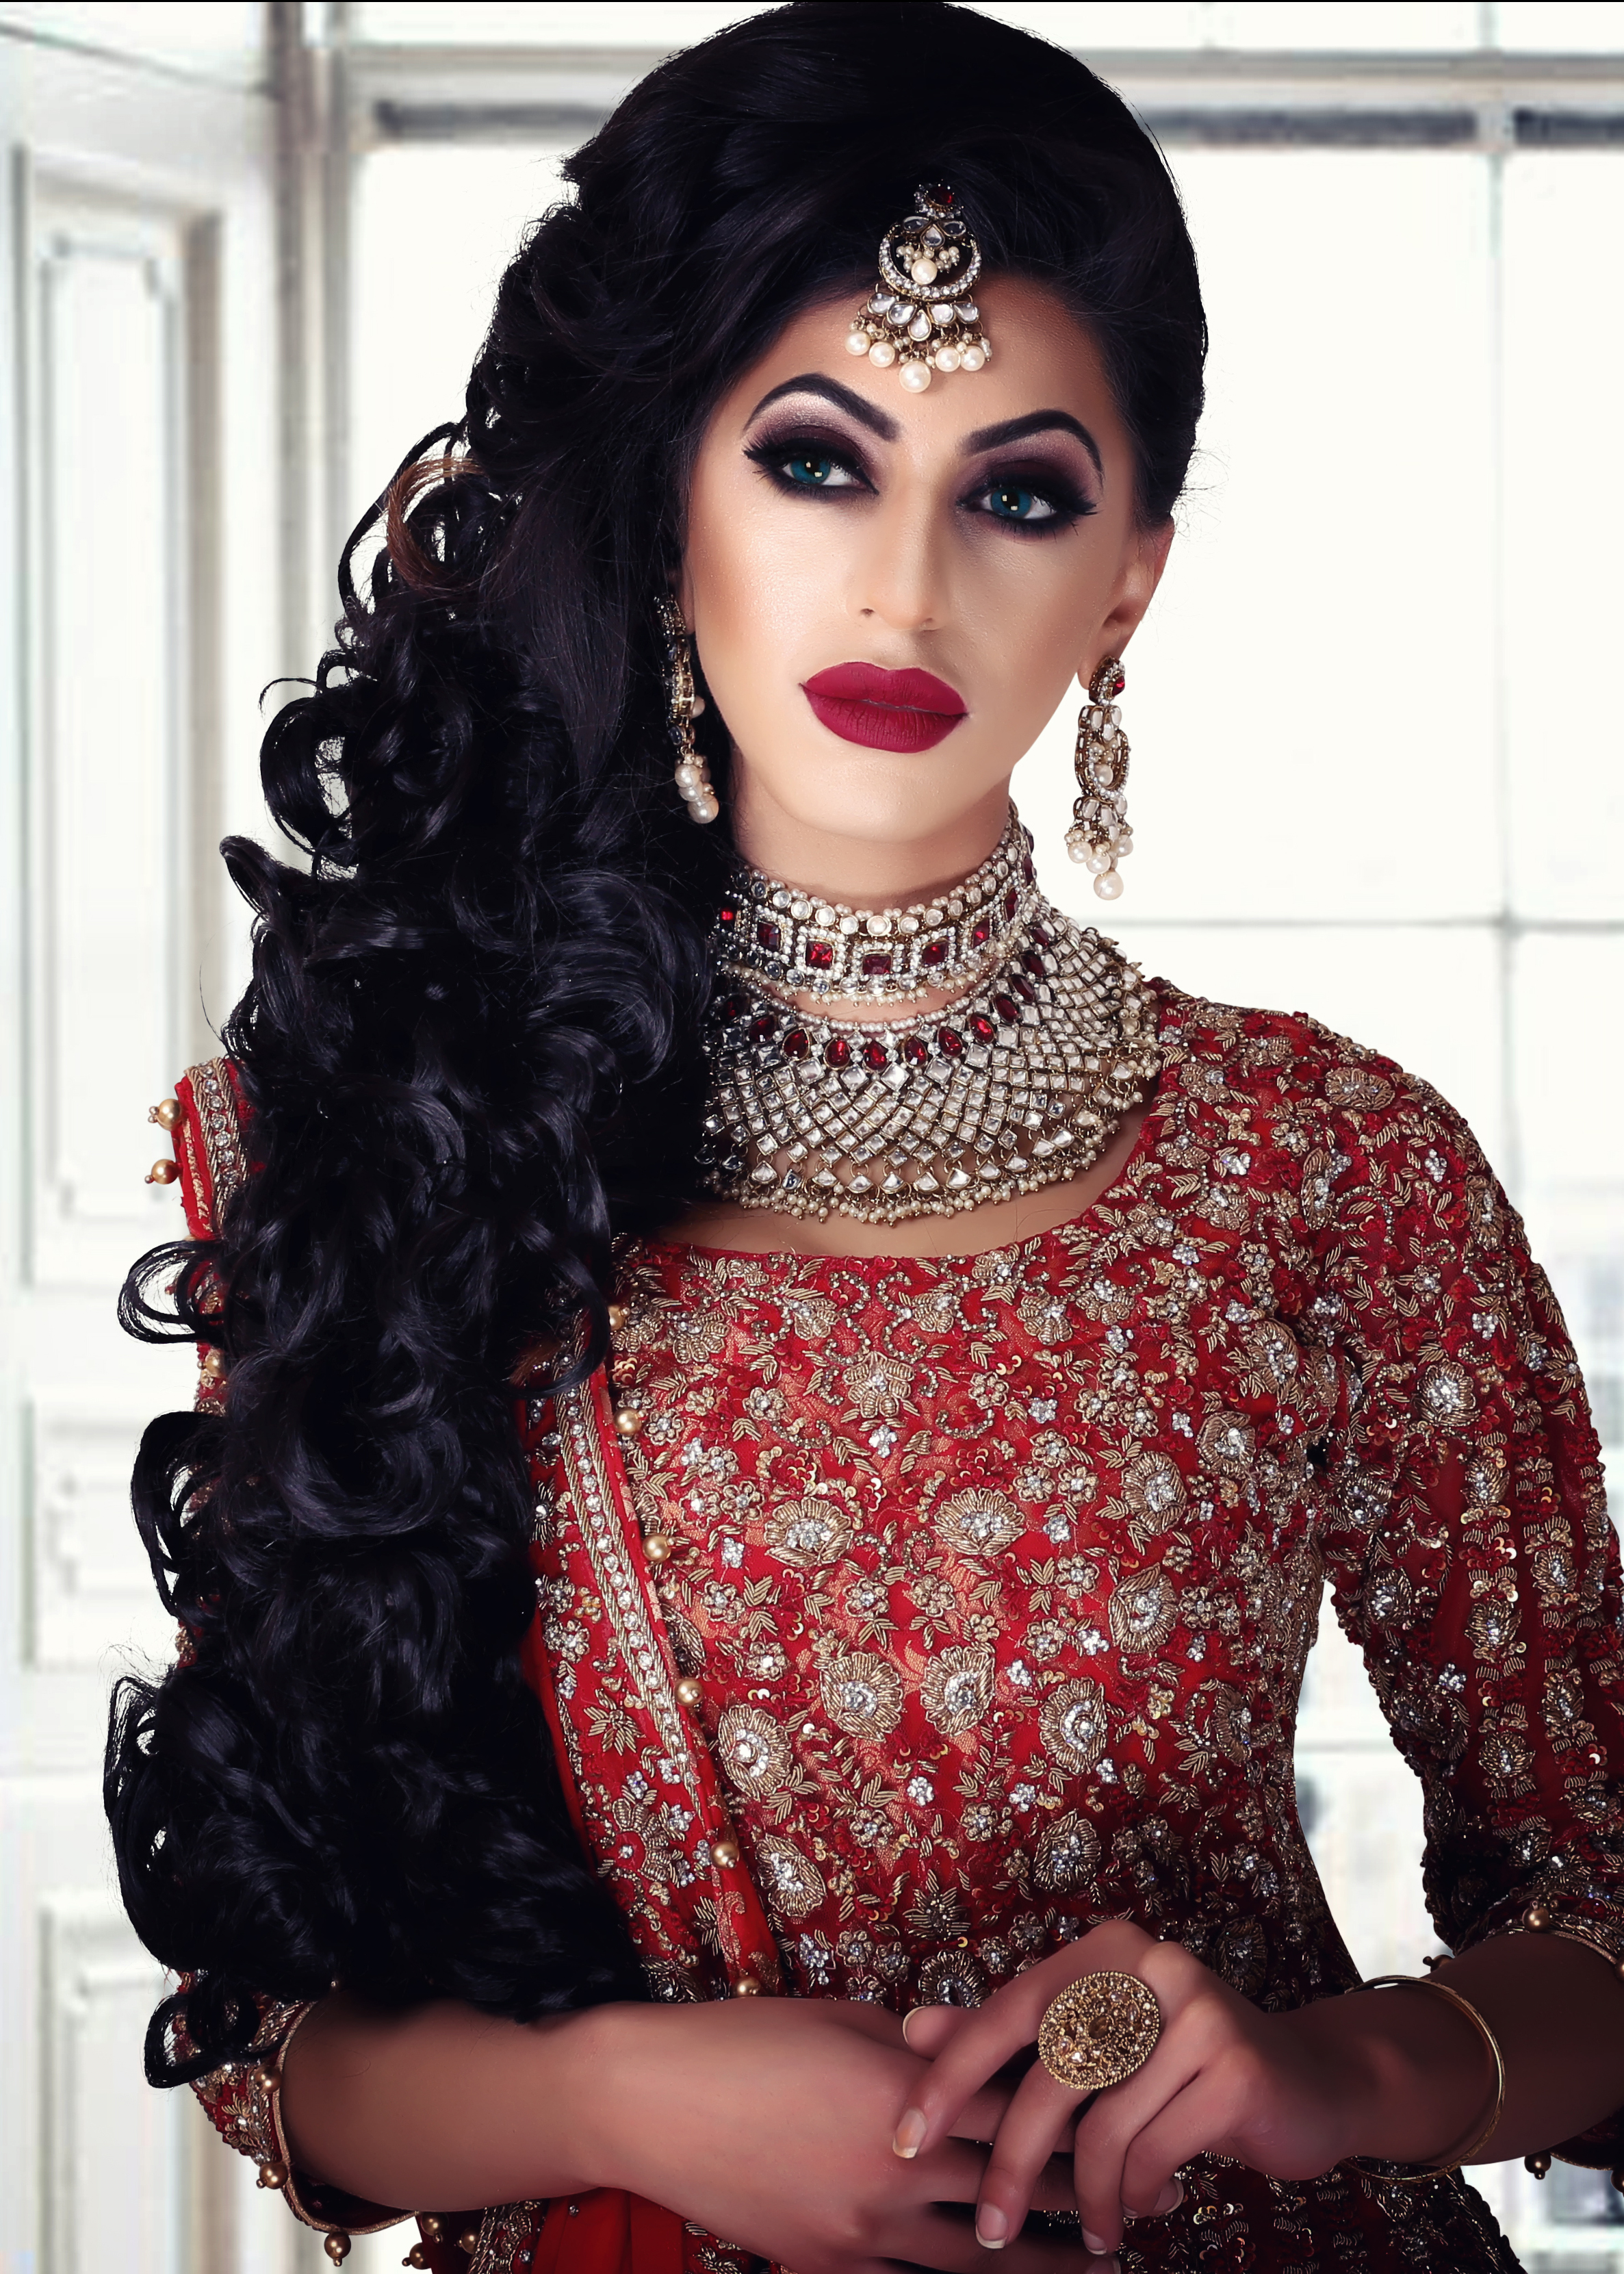 5 DAY - INTENSIVE BRIDAL MAKEUP & HAIR: - Summary:- 10 Makeup Looks- Day/Natural- Evening/Party- Registry/Walima- Classic Bridal- 3 Smokey Eye- Heavy Bridal- Media/ Photographic-10 Hairstyles- Traditional & Modern- Party, Registry, BridalFEES: £1100